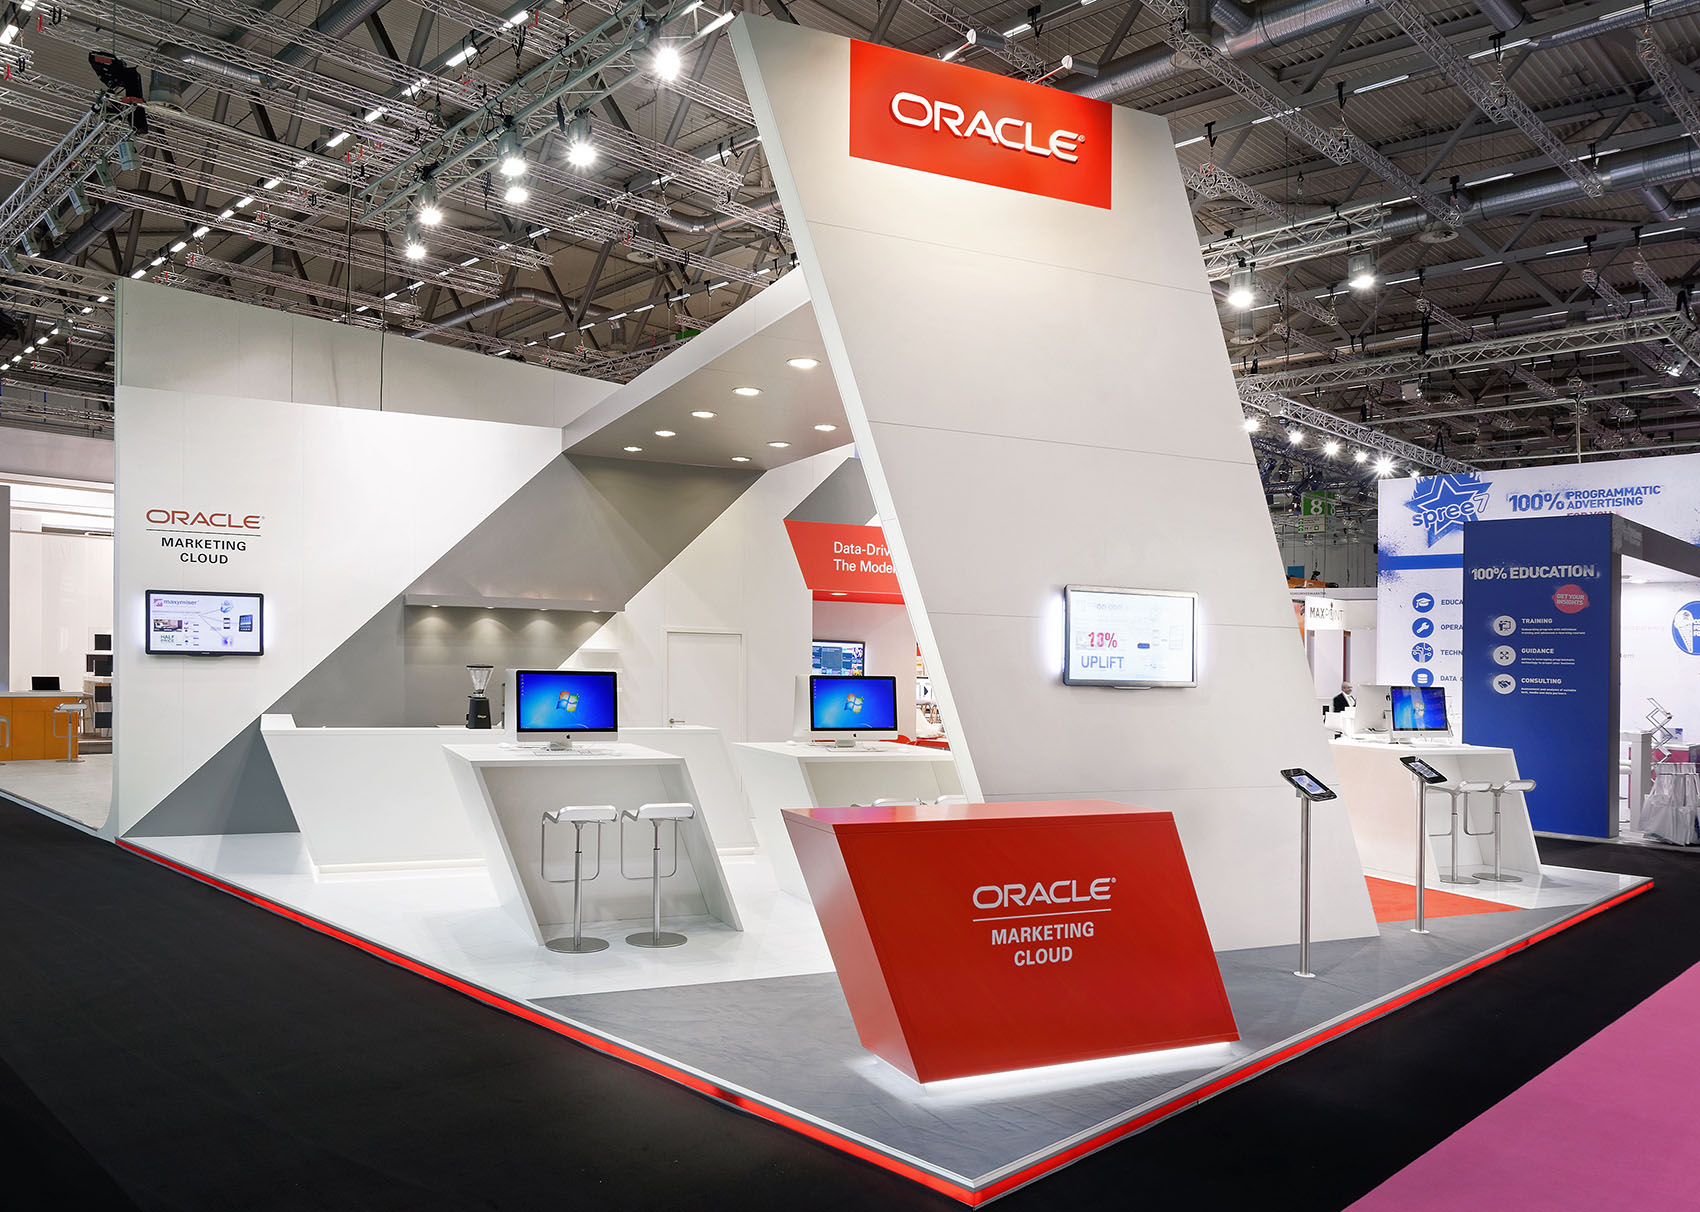 Marketing Exhibition Stand Design : Oracle blickfang messebau gmbh